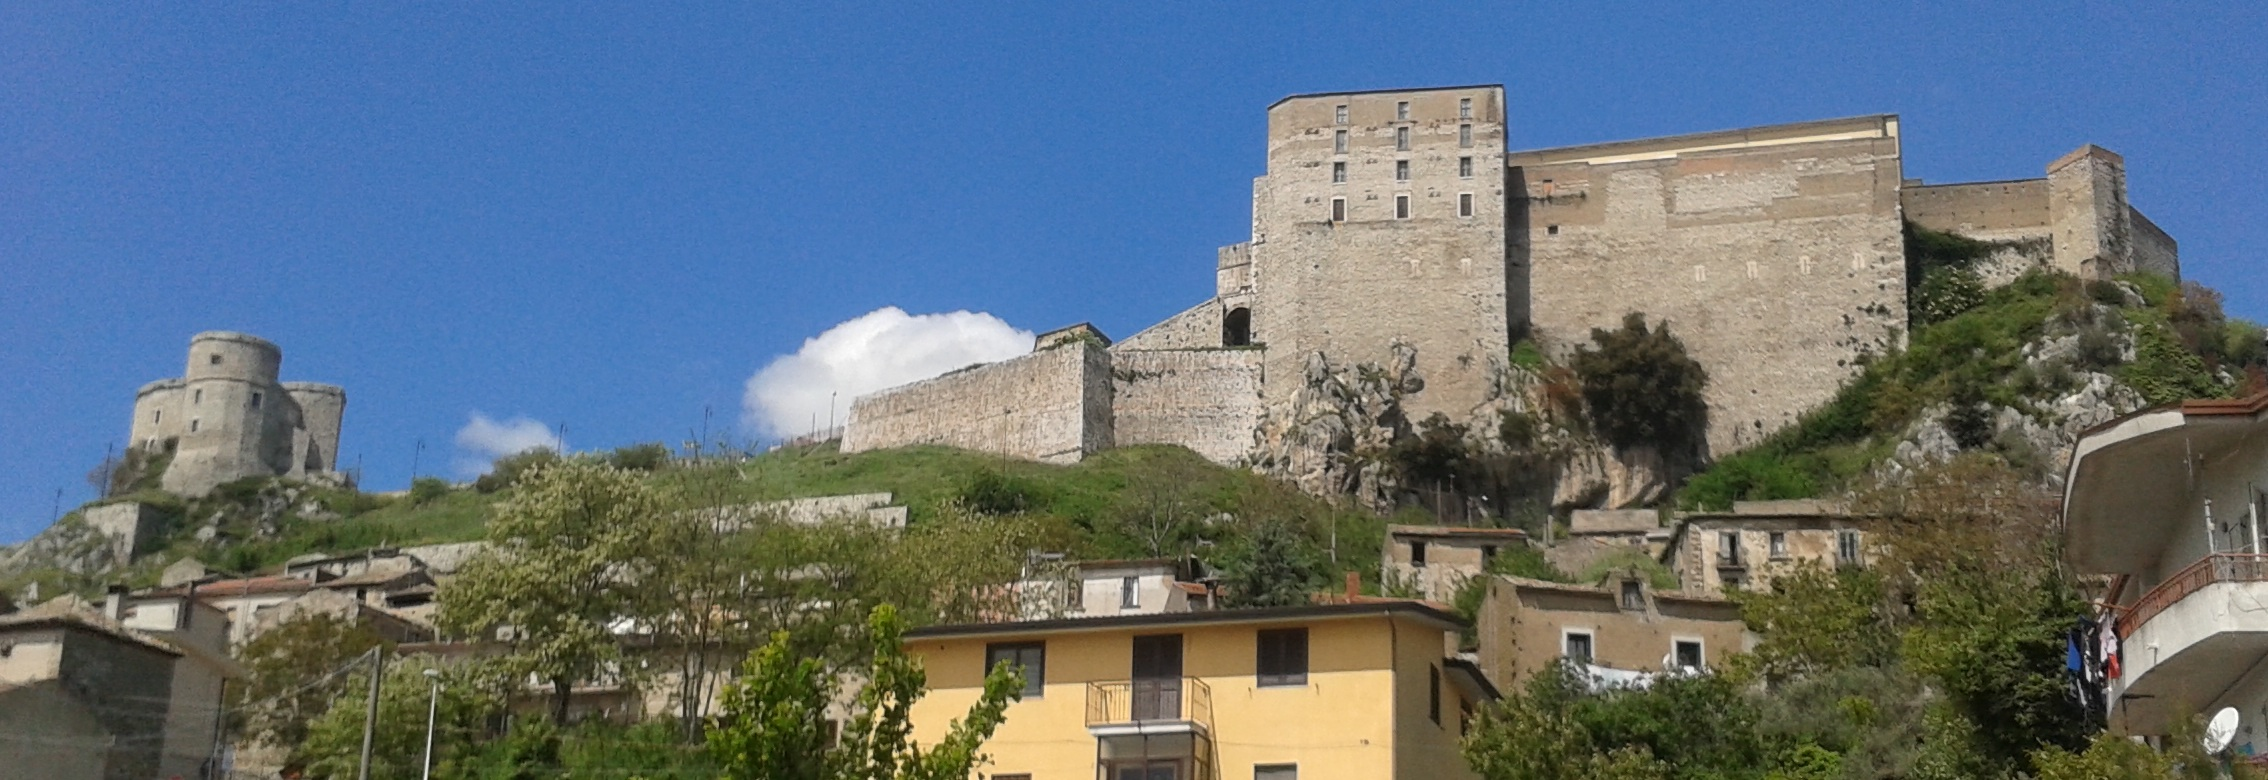 montesarchio